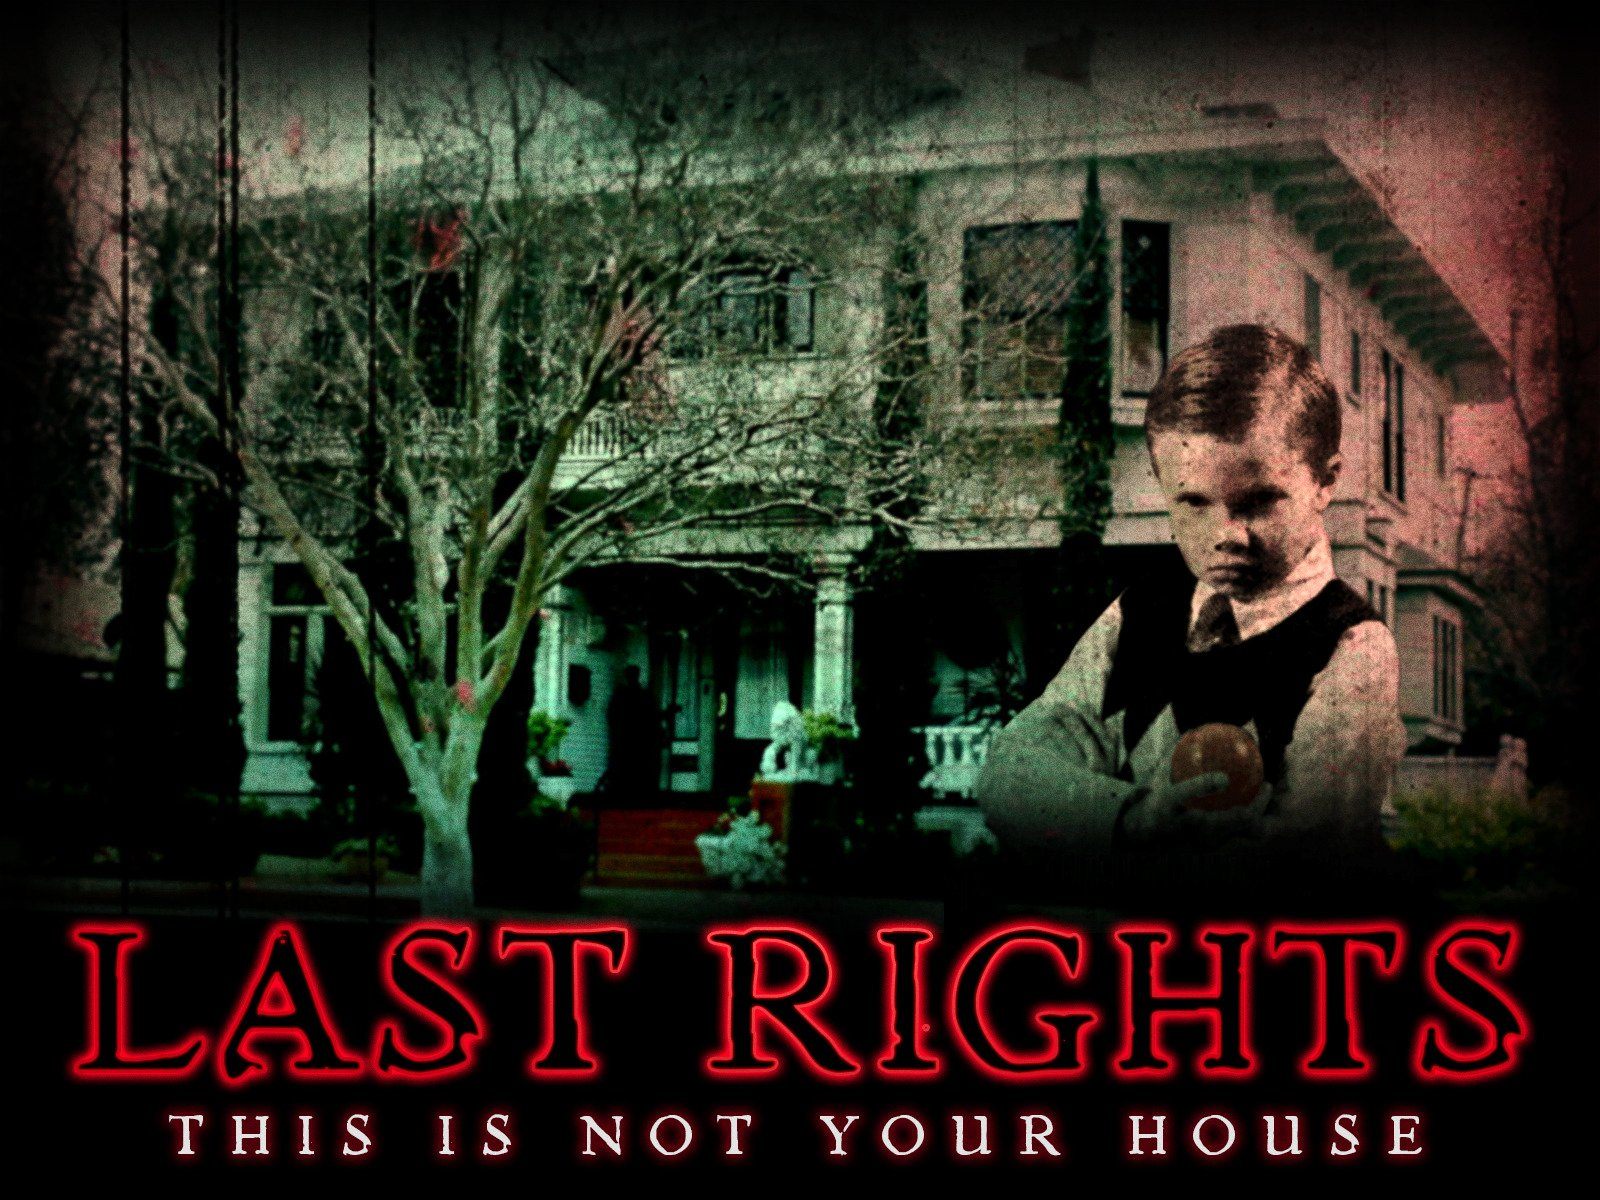 Last Rights - Season 1